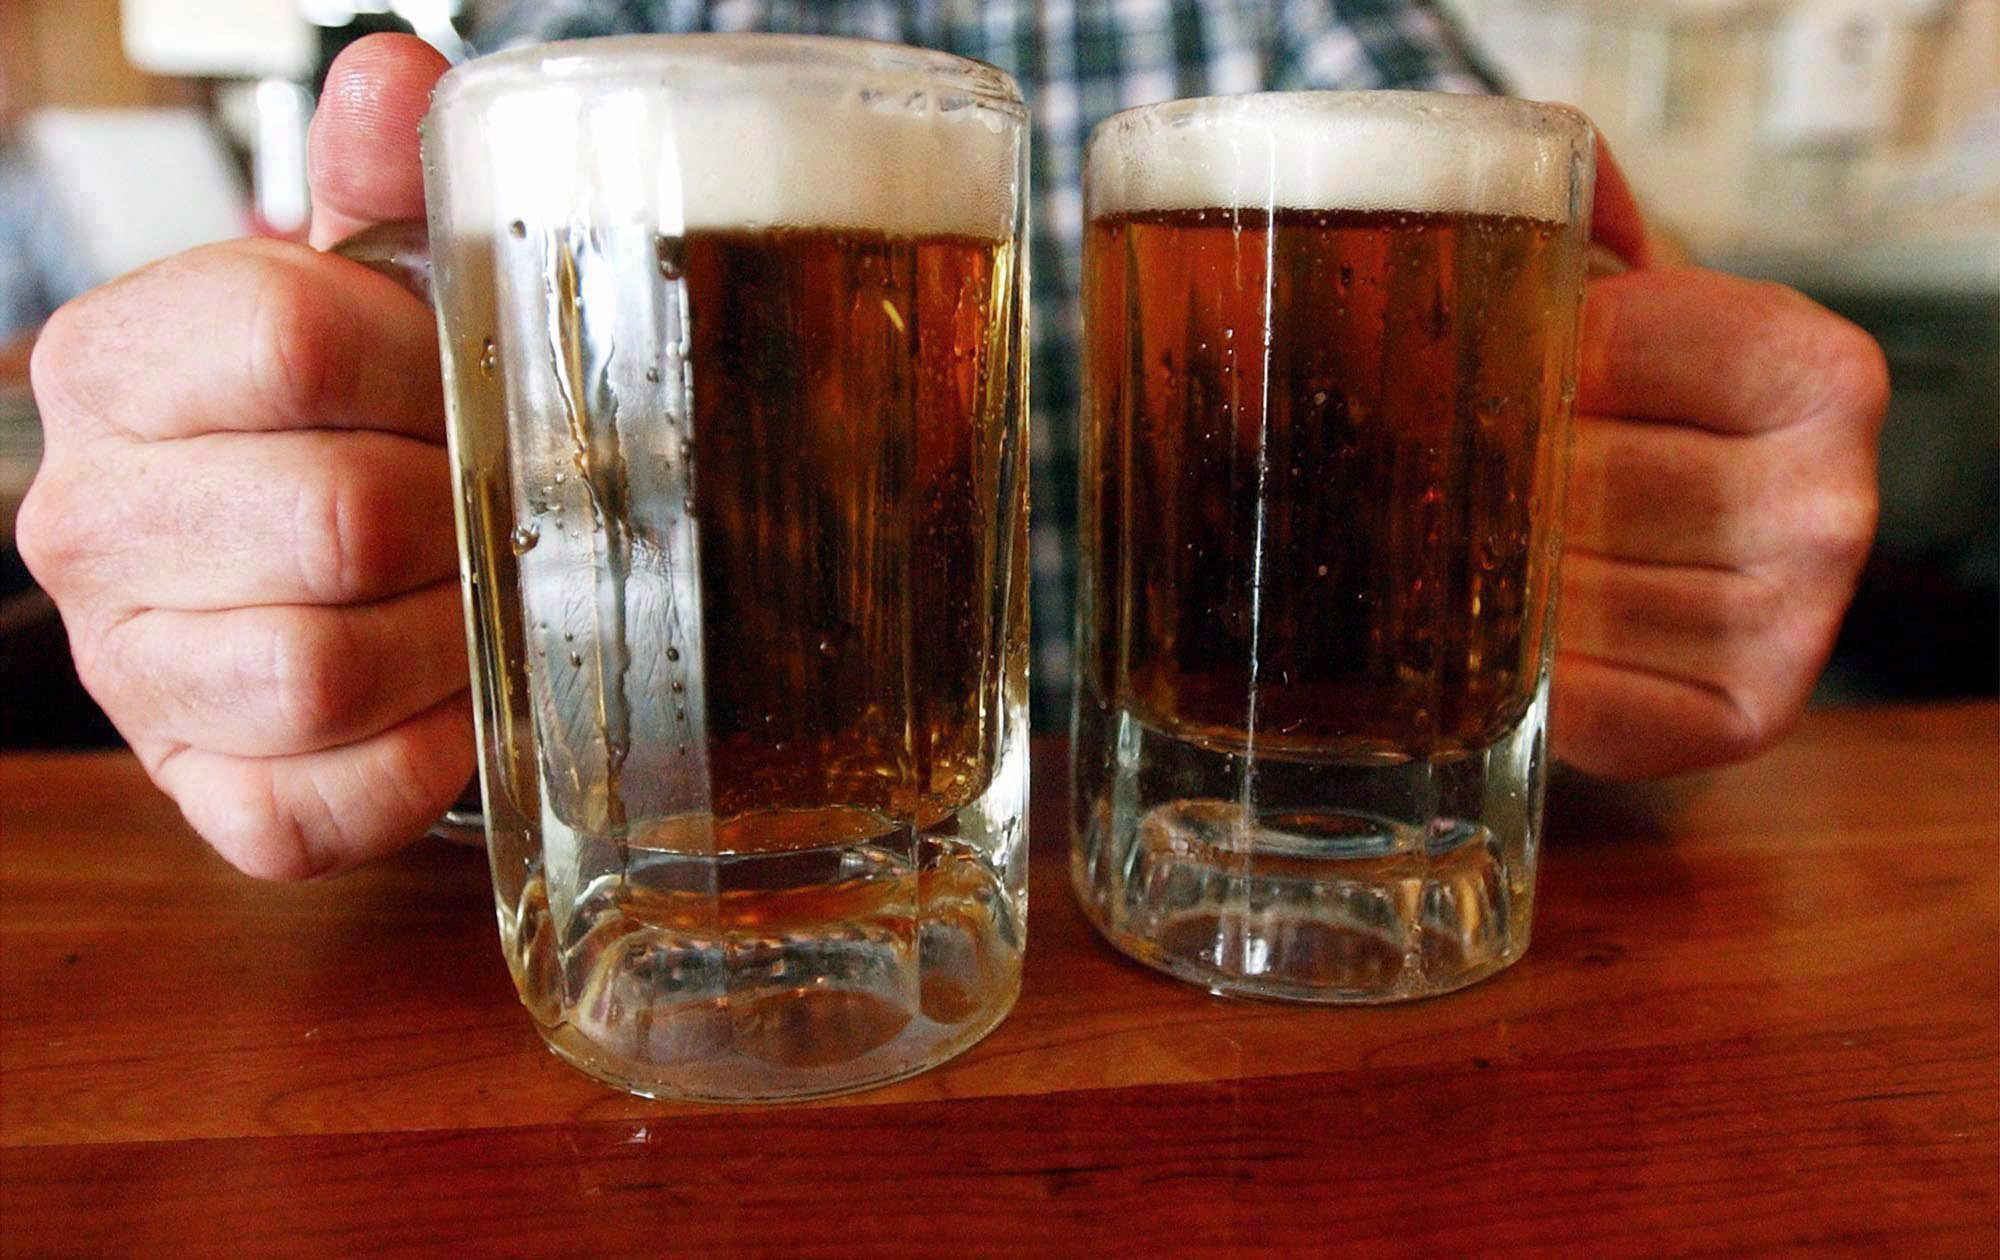 Ontario to offer incentives to brewers in buck a beer plan